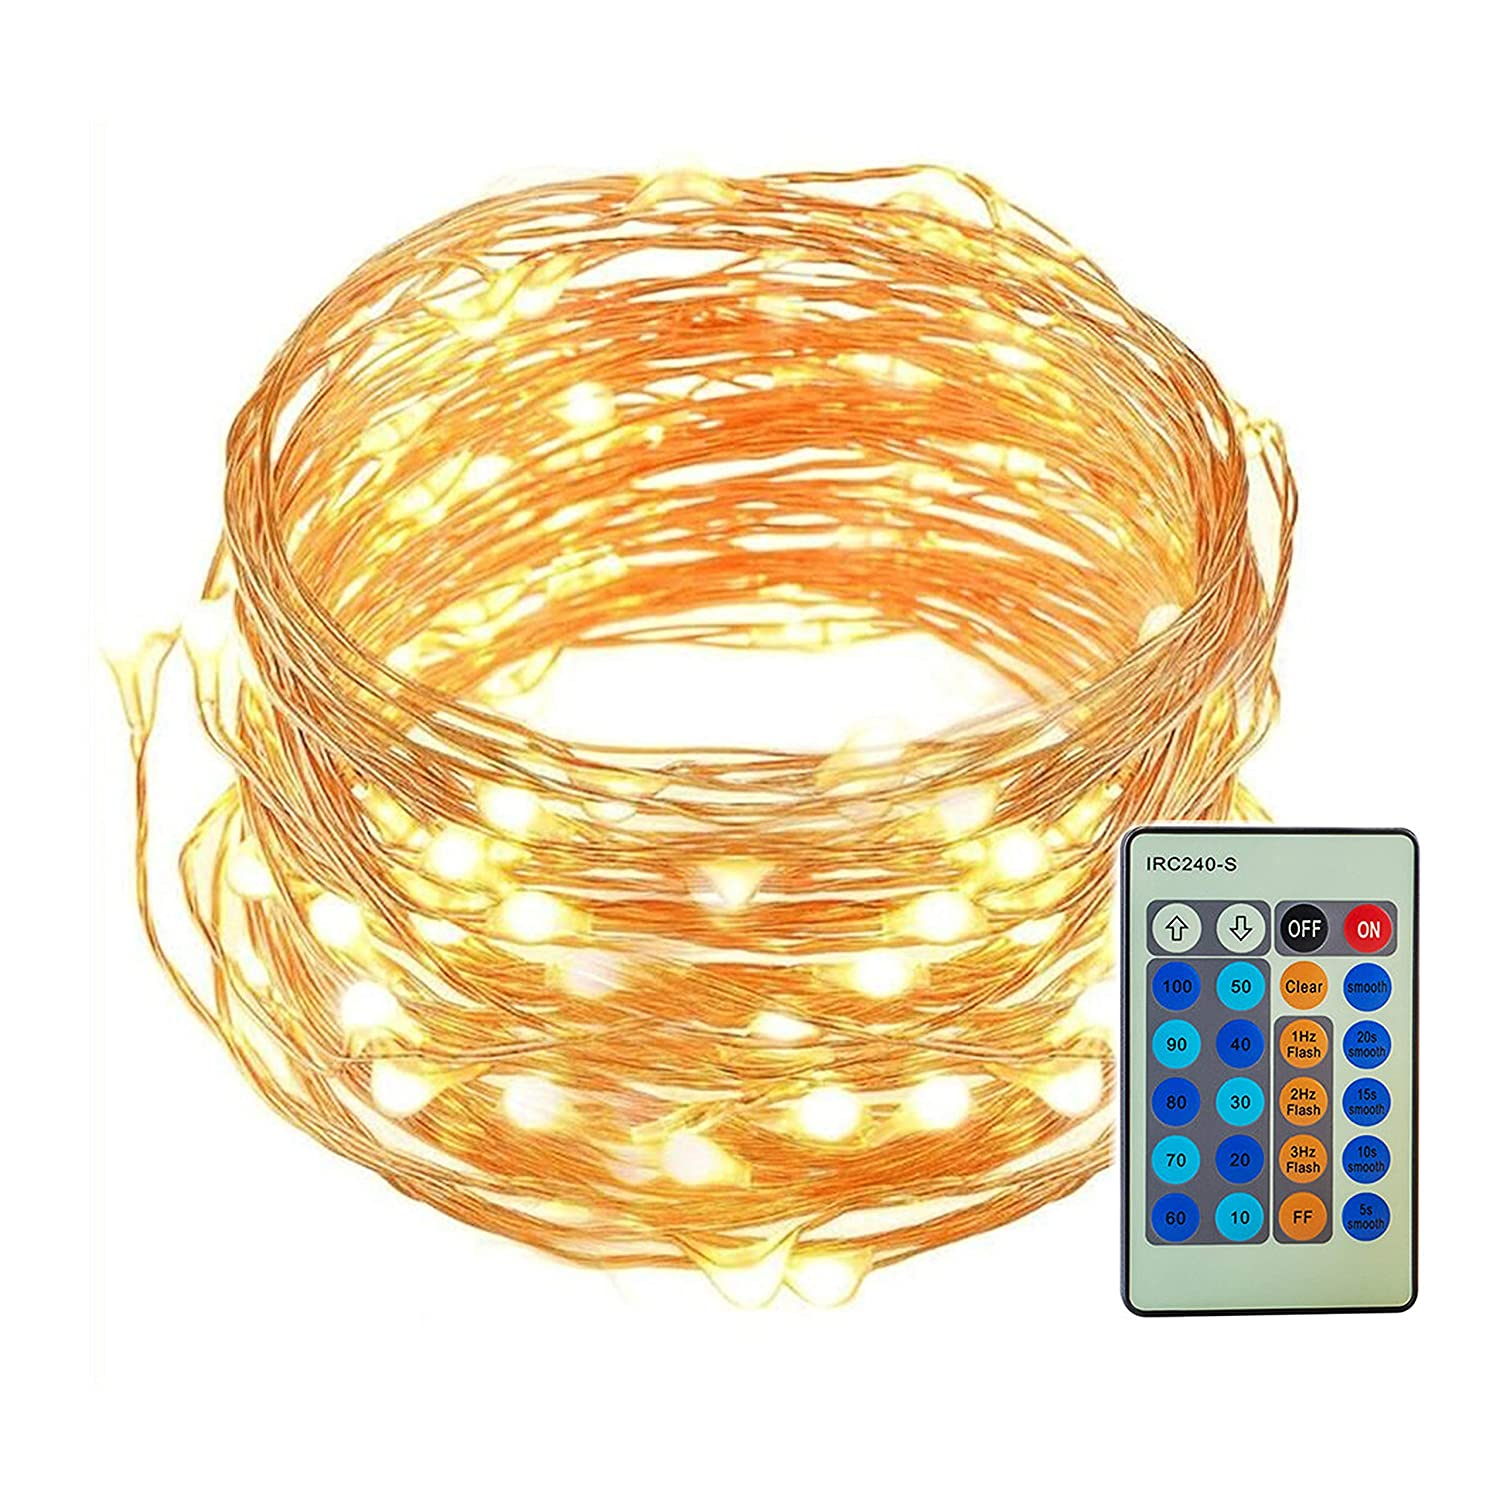 Indoor//Outdoor Waterproof Christmas Lights for Birthday Warm White FIGROL-Direct DJLED-100led Wedding,Party Patio FIGROL LED String Lights with Remote Control 33ft with 100 LEDs Dimmable String Lights for Bedroom